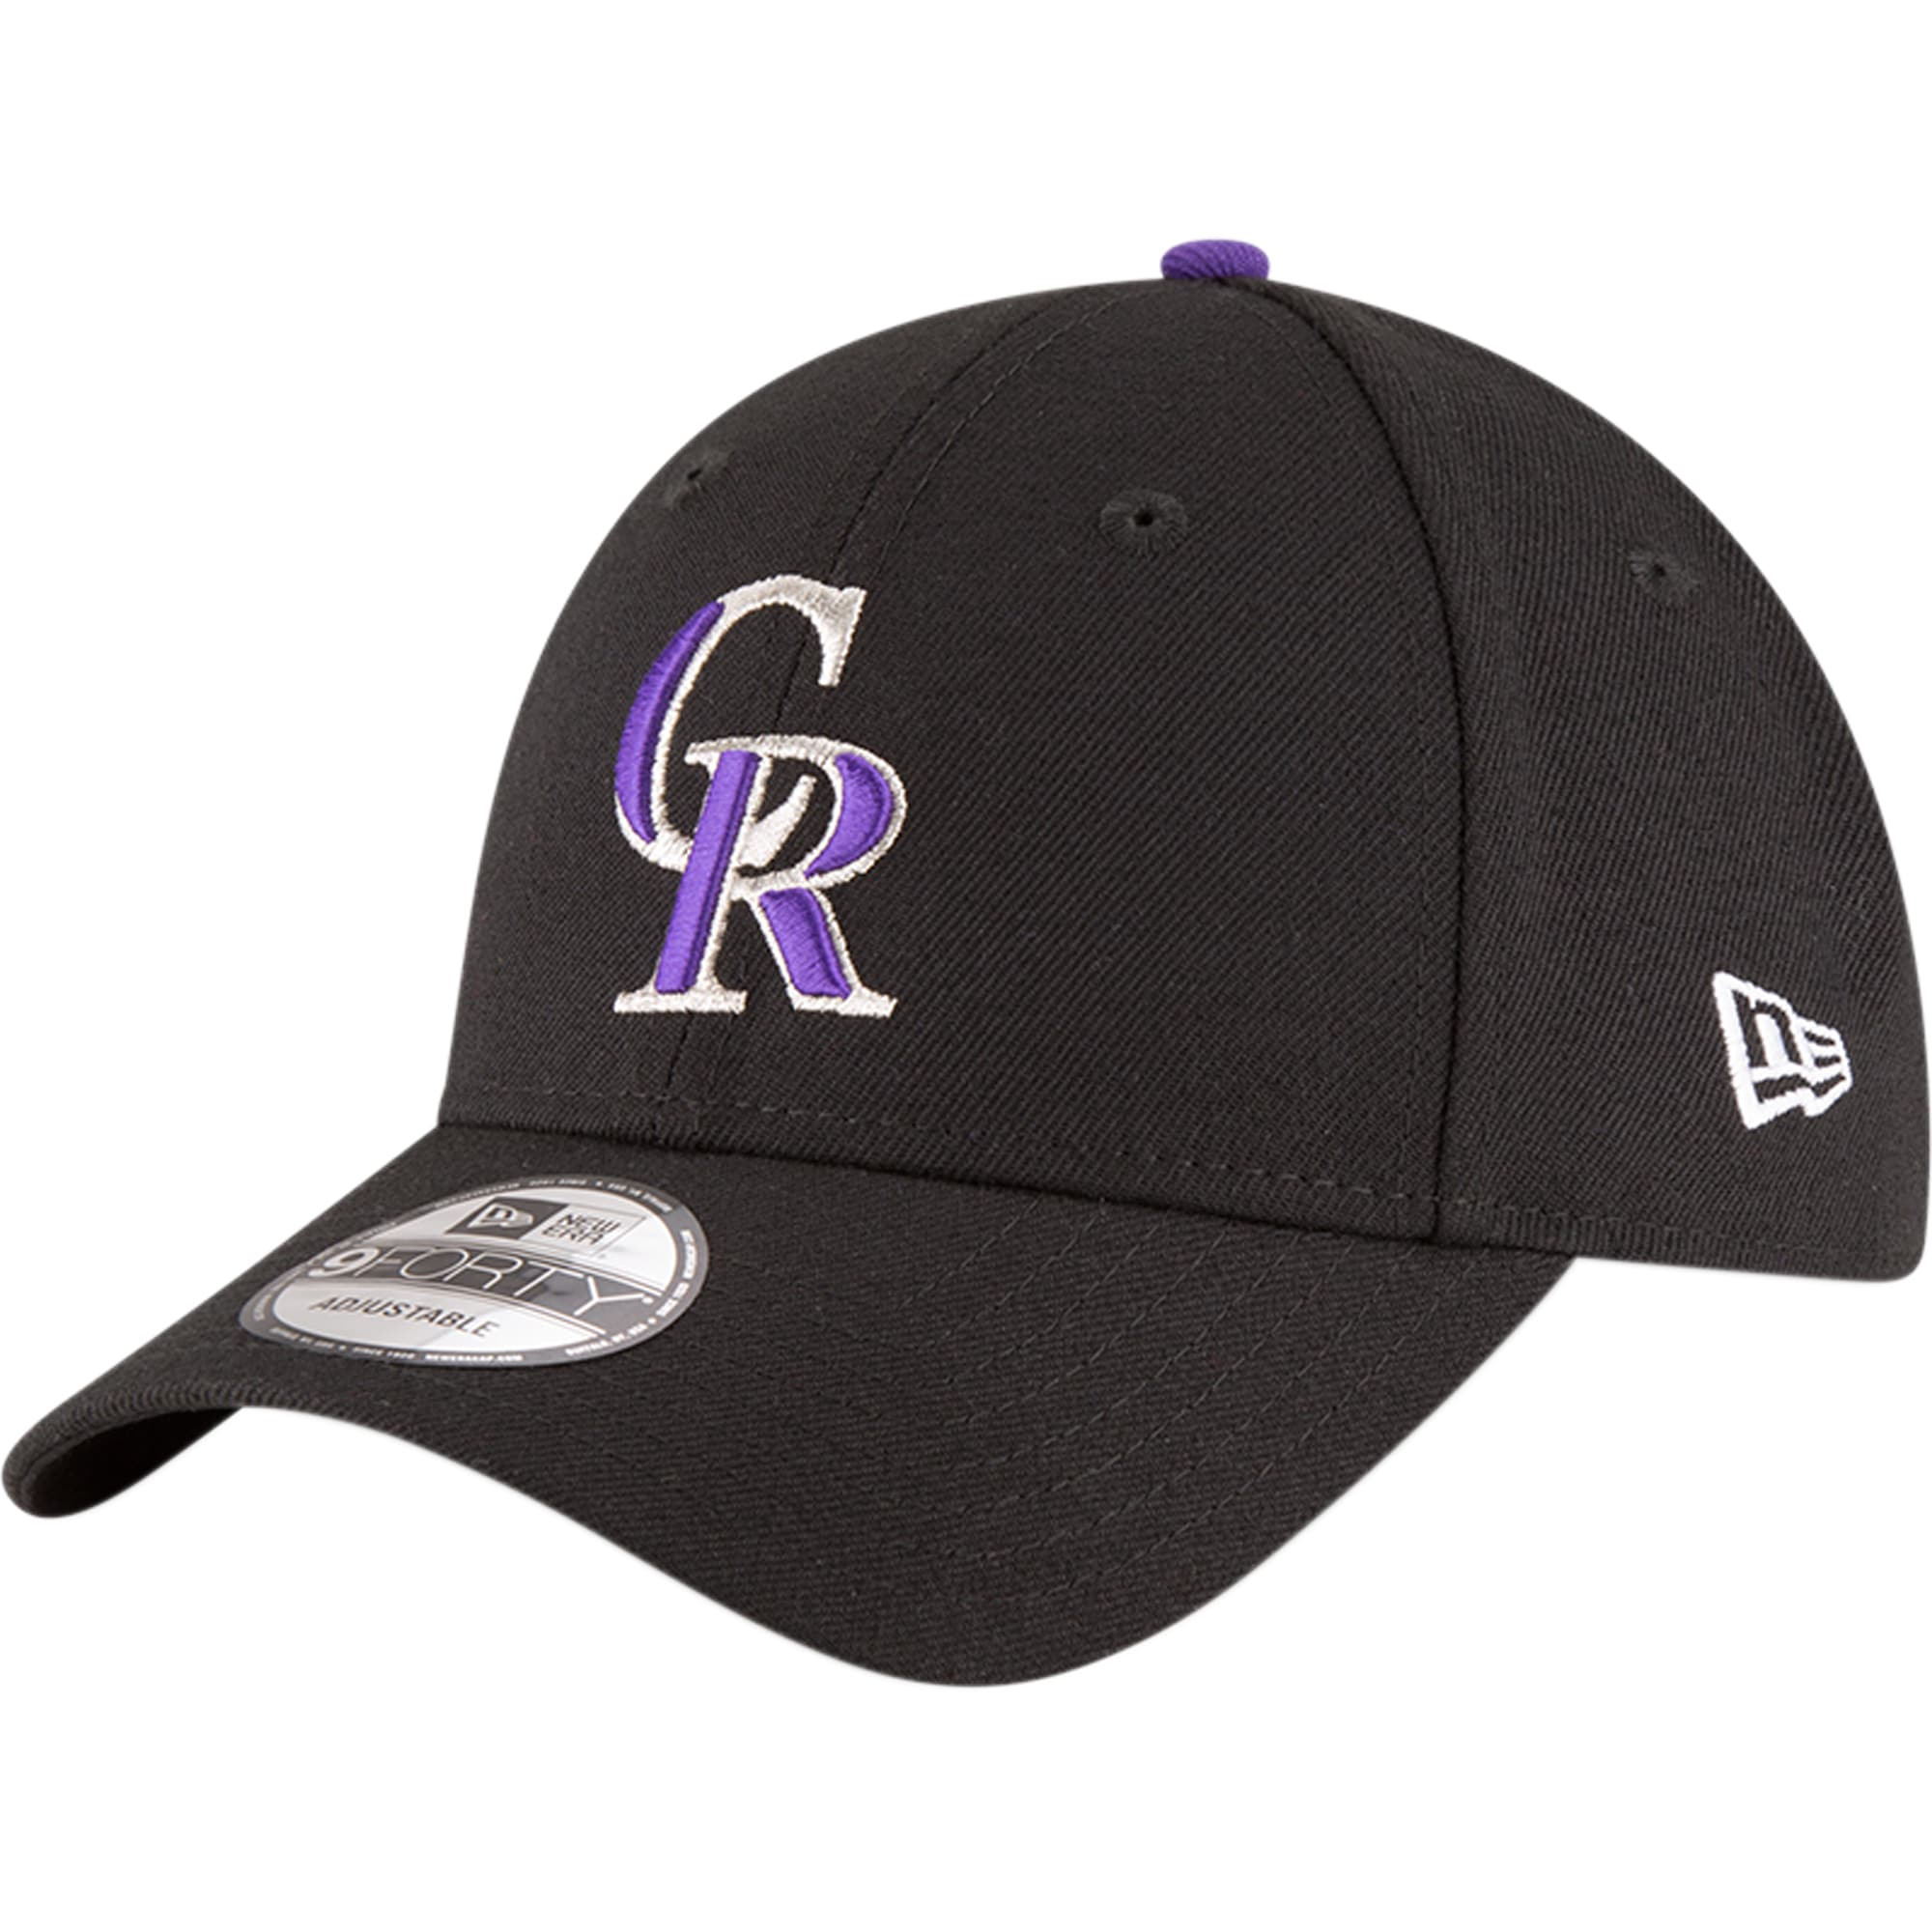 Colorado Rockies New Era Game The League 9FORTY Adjustable Hat - Black